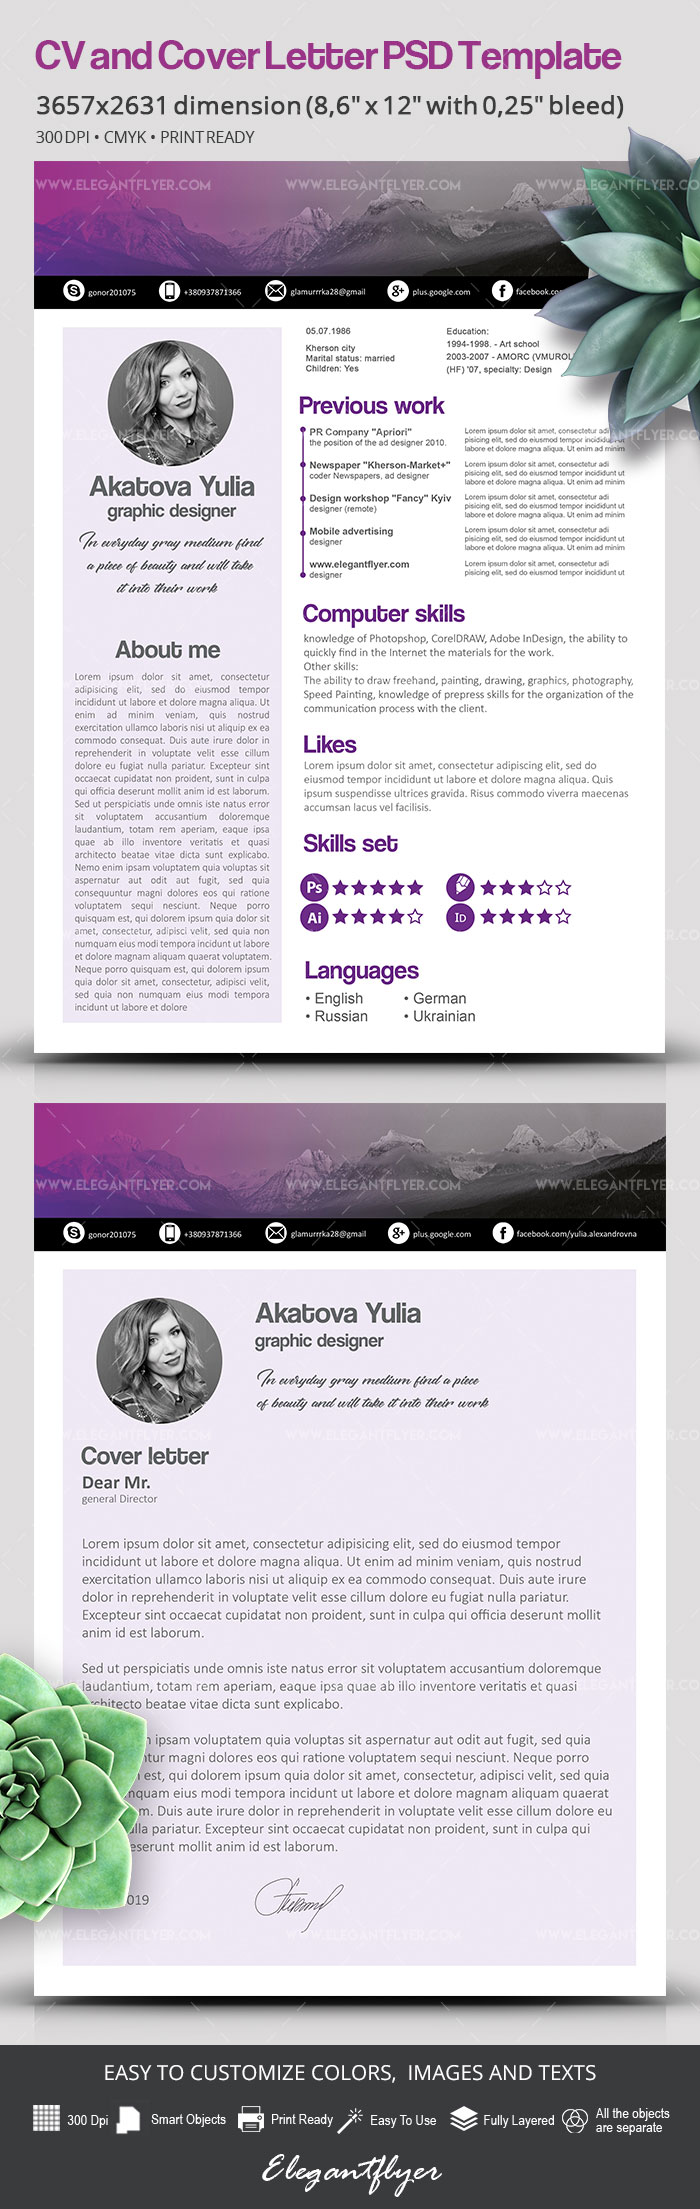 Free CV Template in PSD